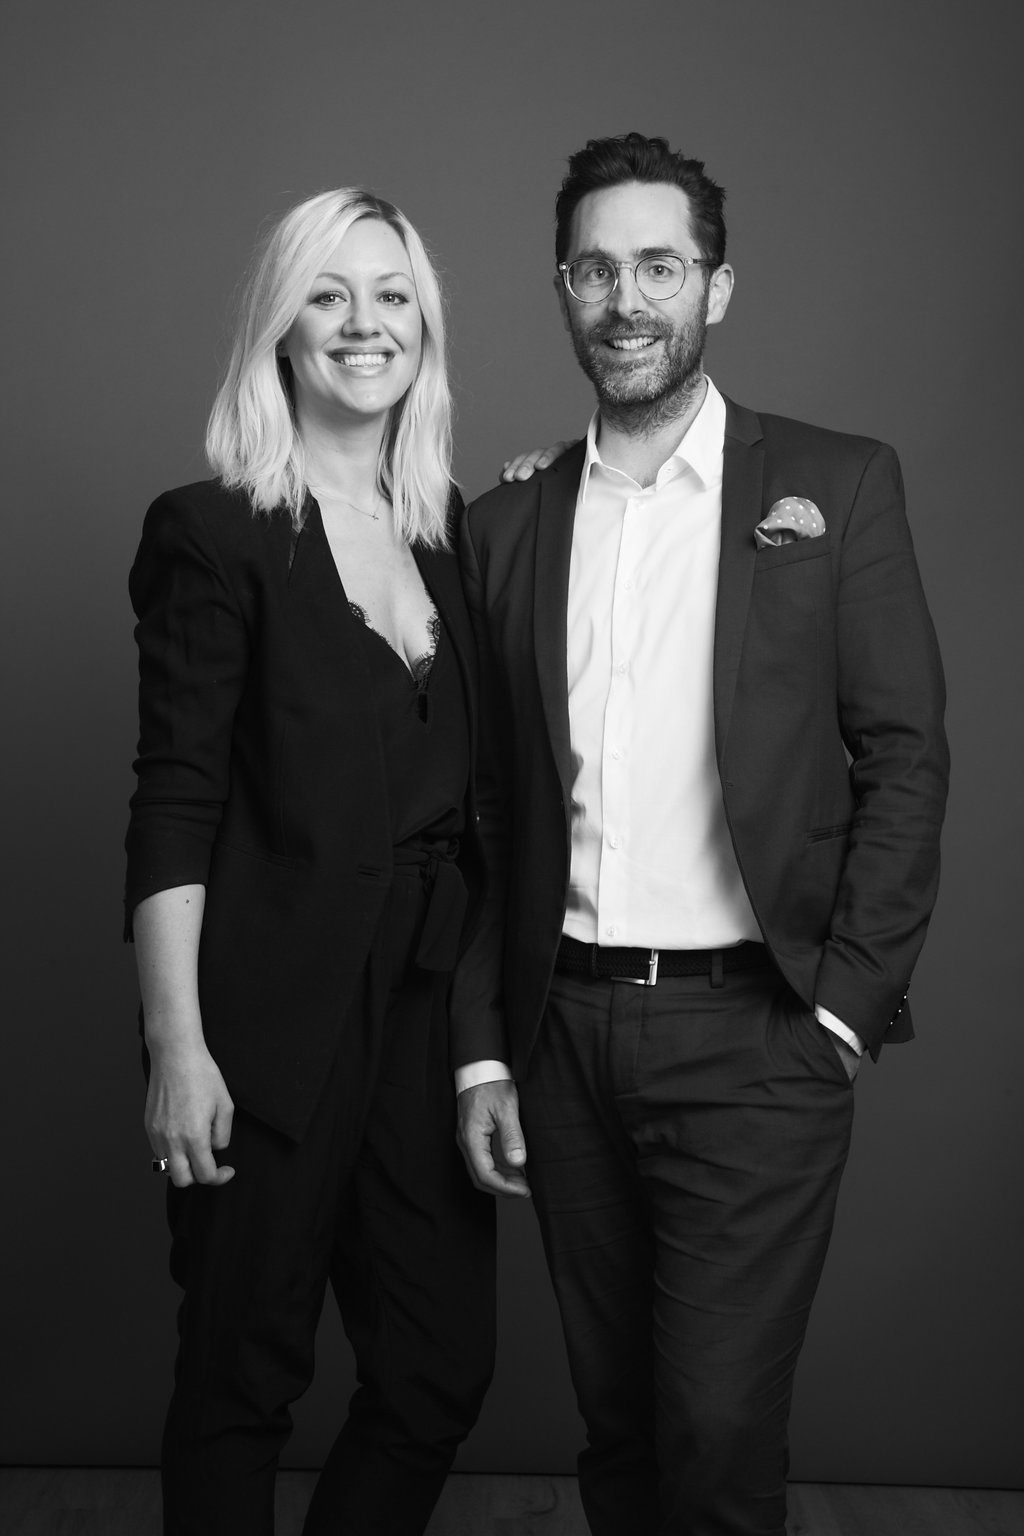 Olivia Skuza and Heath Wells, founders and co-chief executive officers of NuOrder